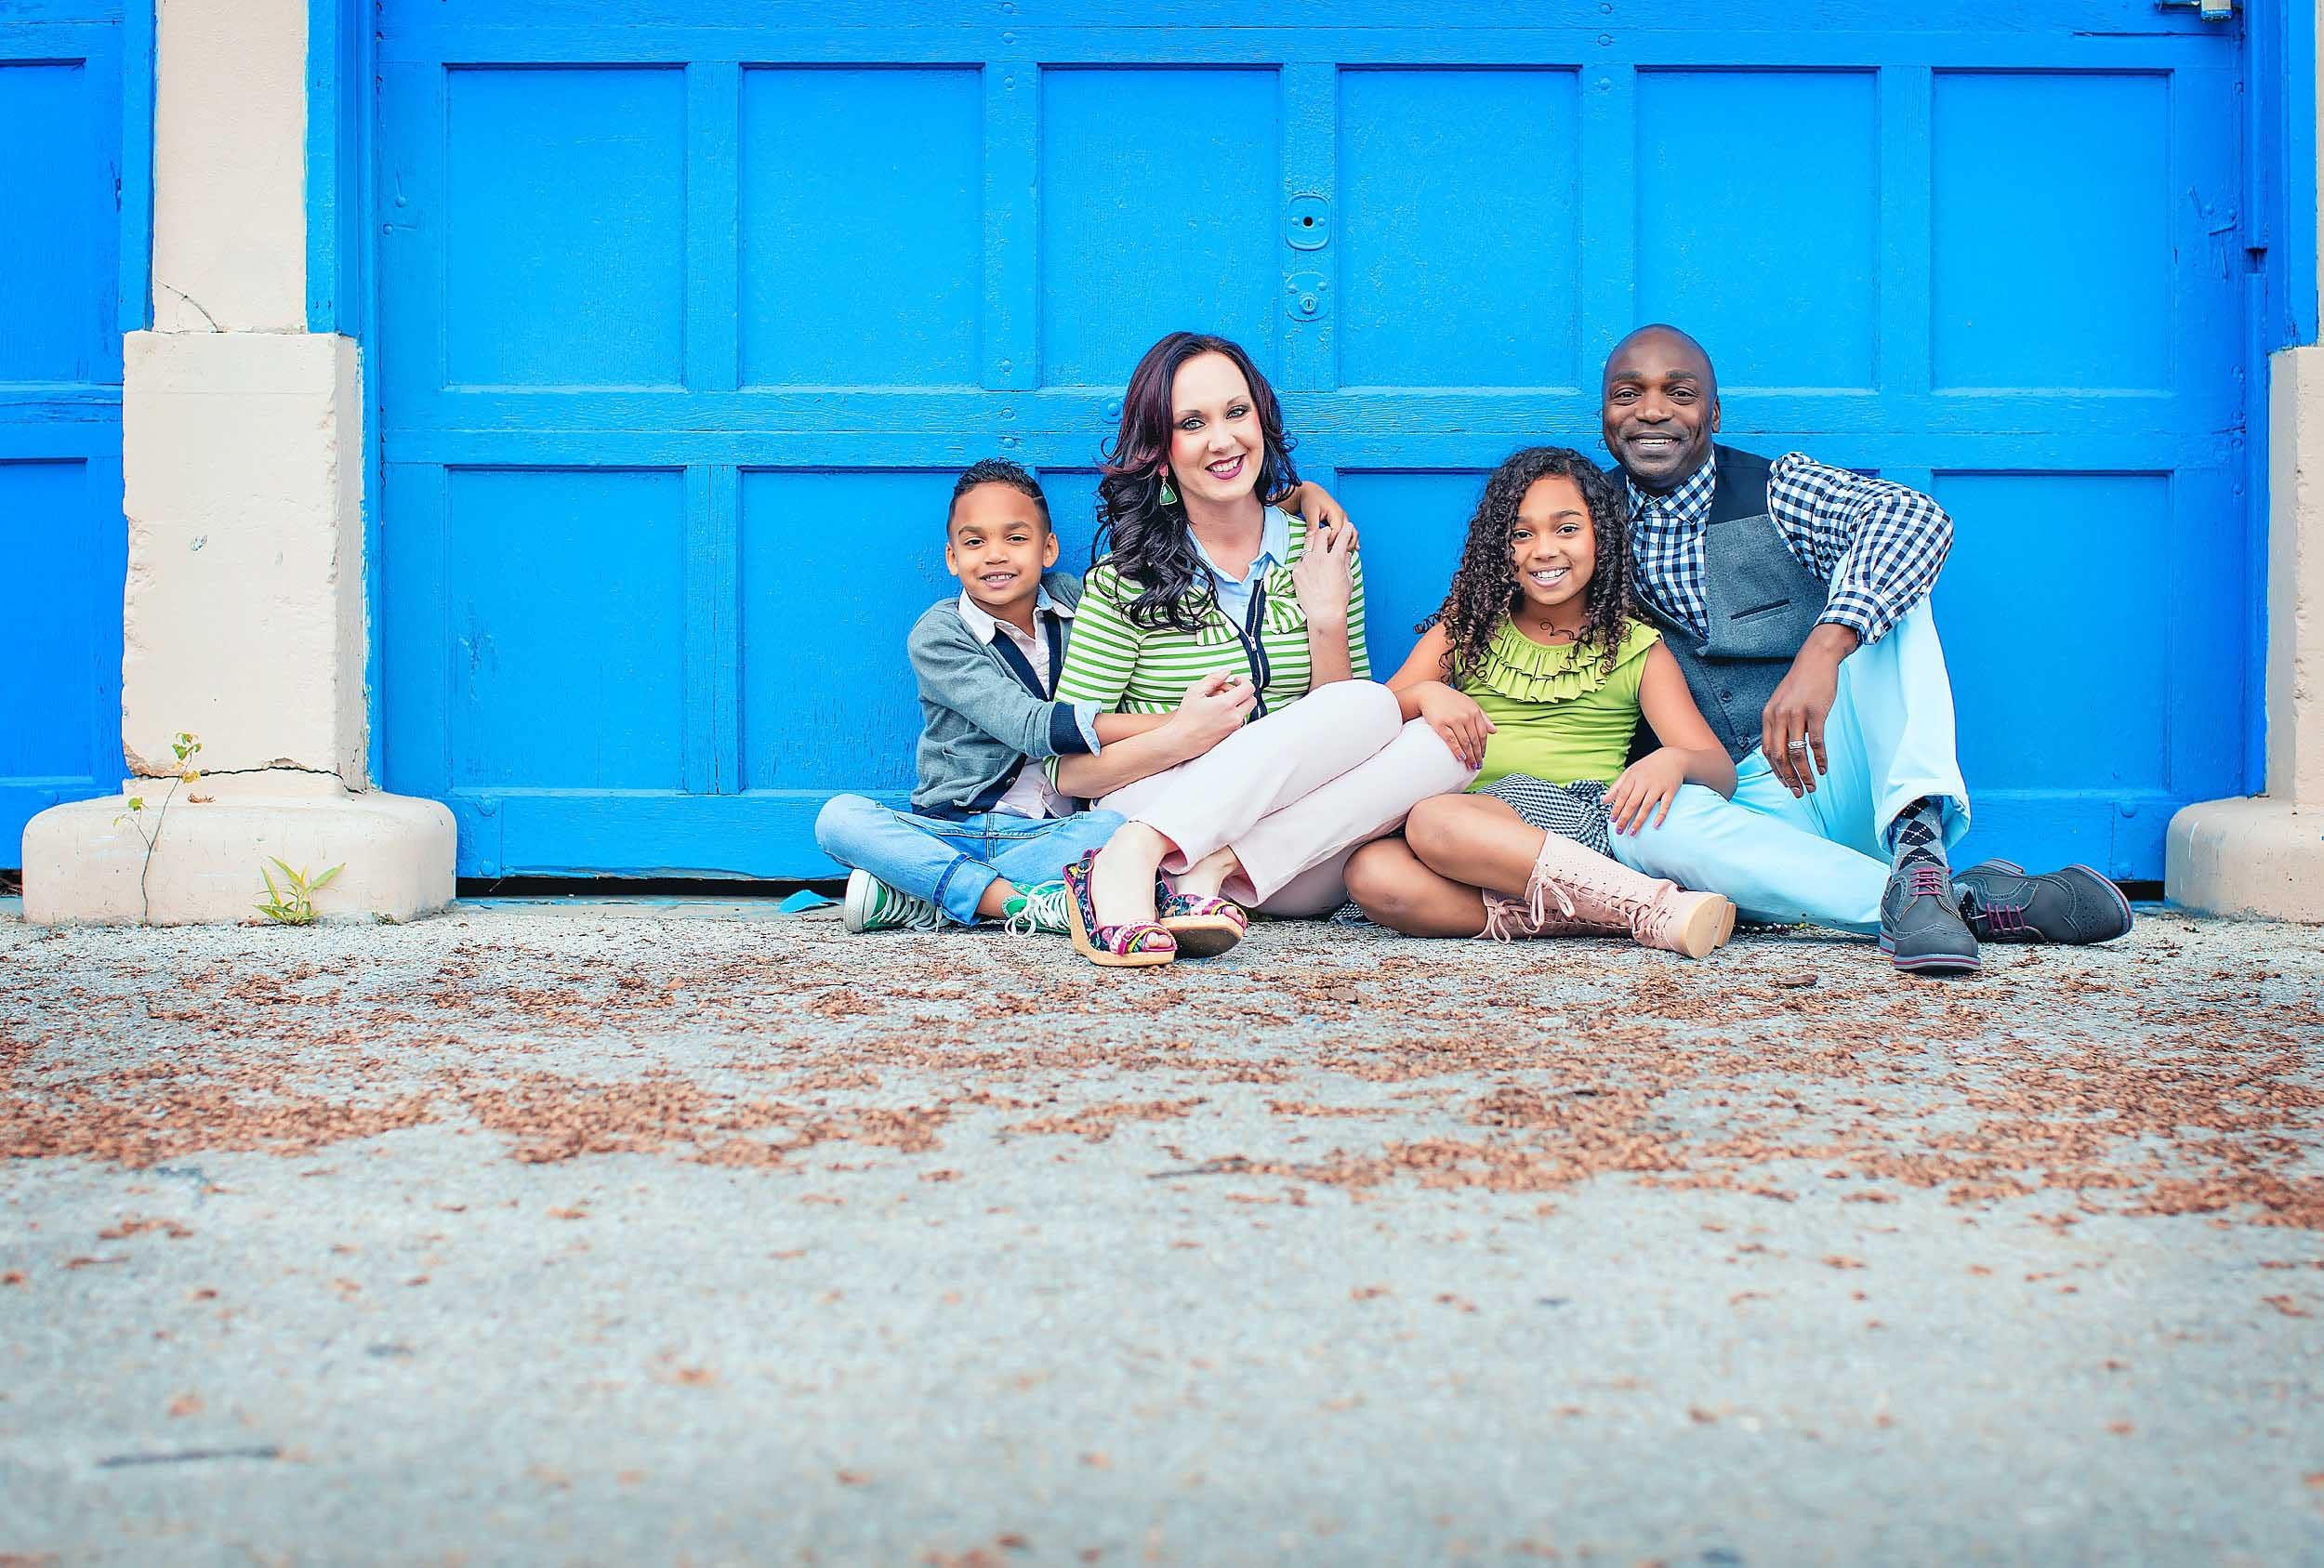 Coloful family portrait against blue garage door by Houston Family photographer spryART photography